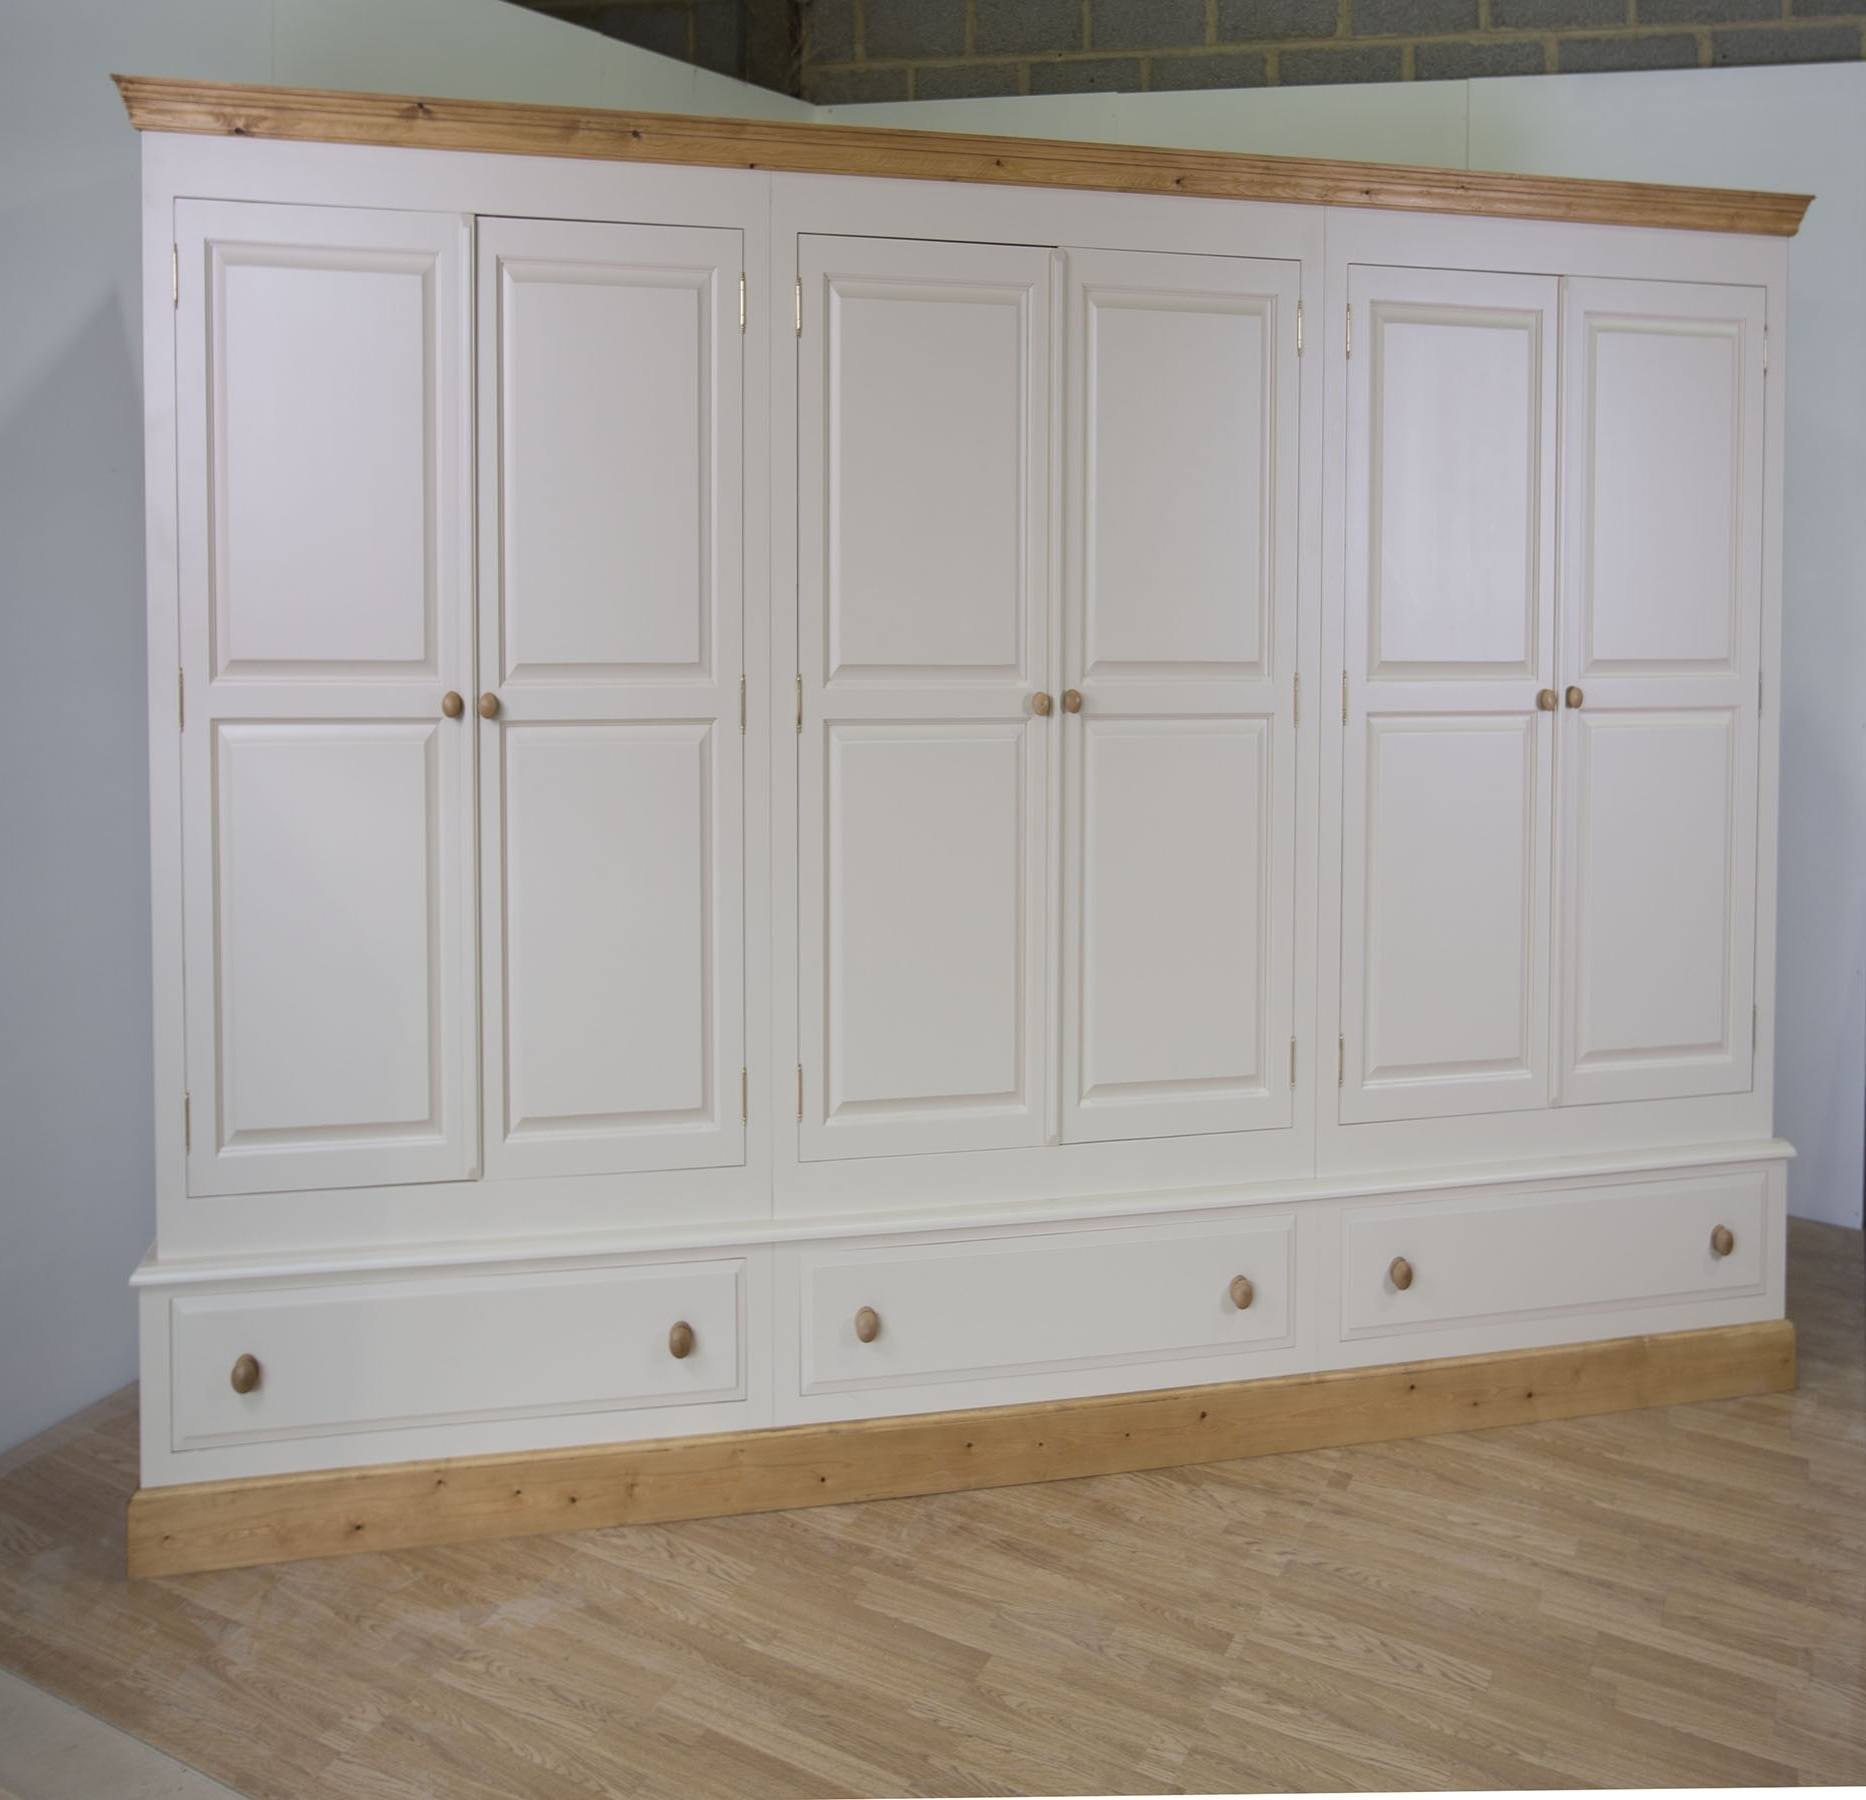 Most Recently Released Large Pine Wardrobe With Drawers • Drawer Furniture With Regard To White And Pine Wardrobes (View 6 of 15)